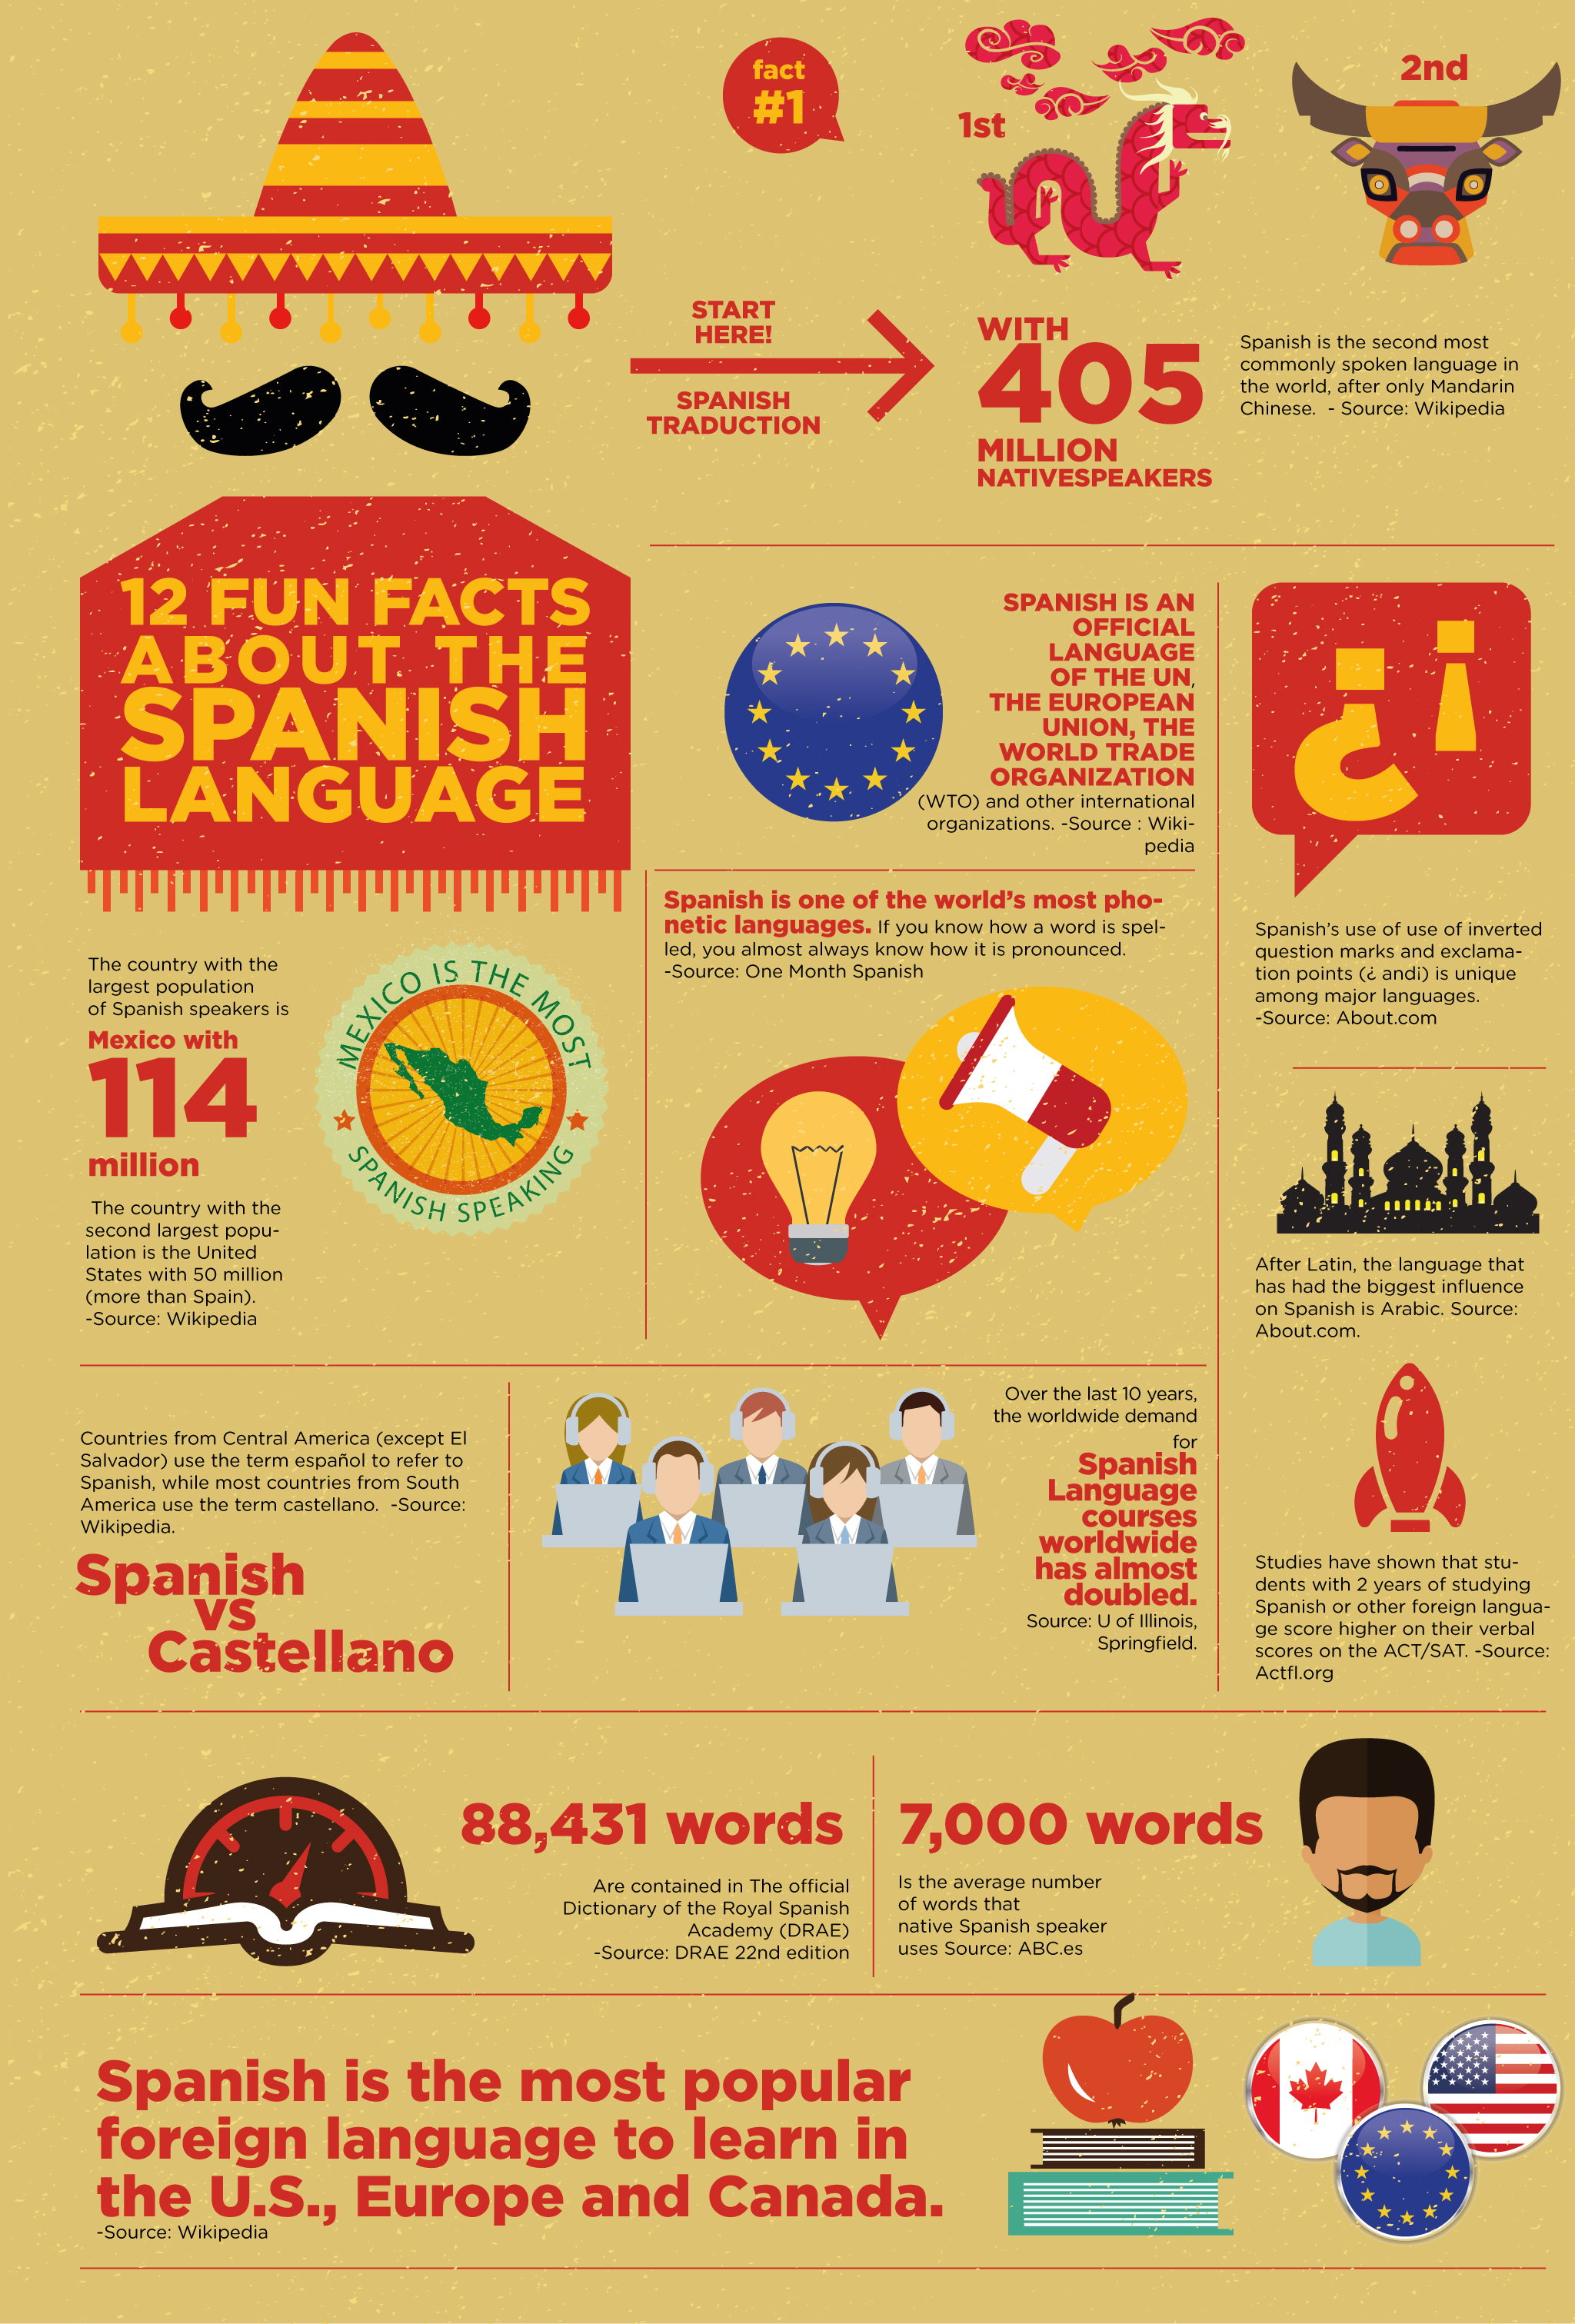 12 Fun Facts About The Spanish Language